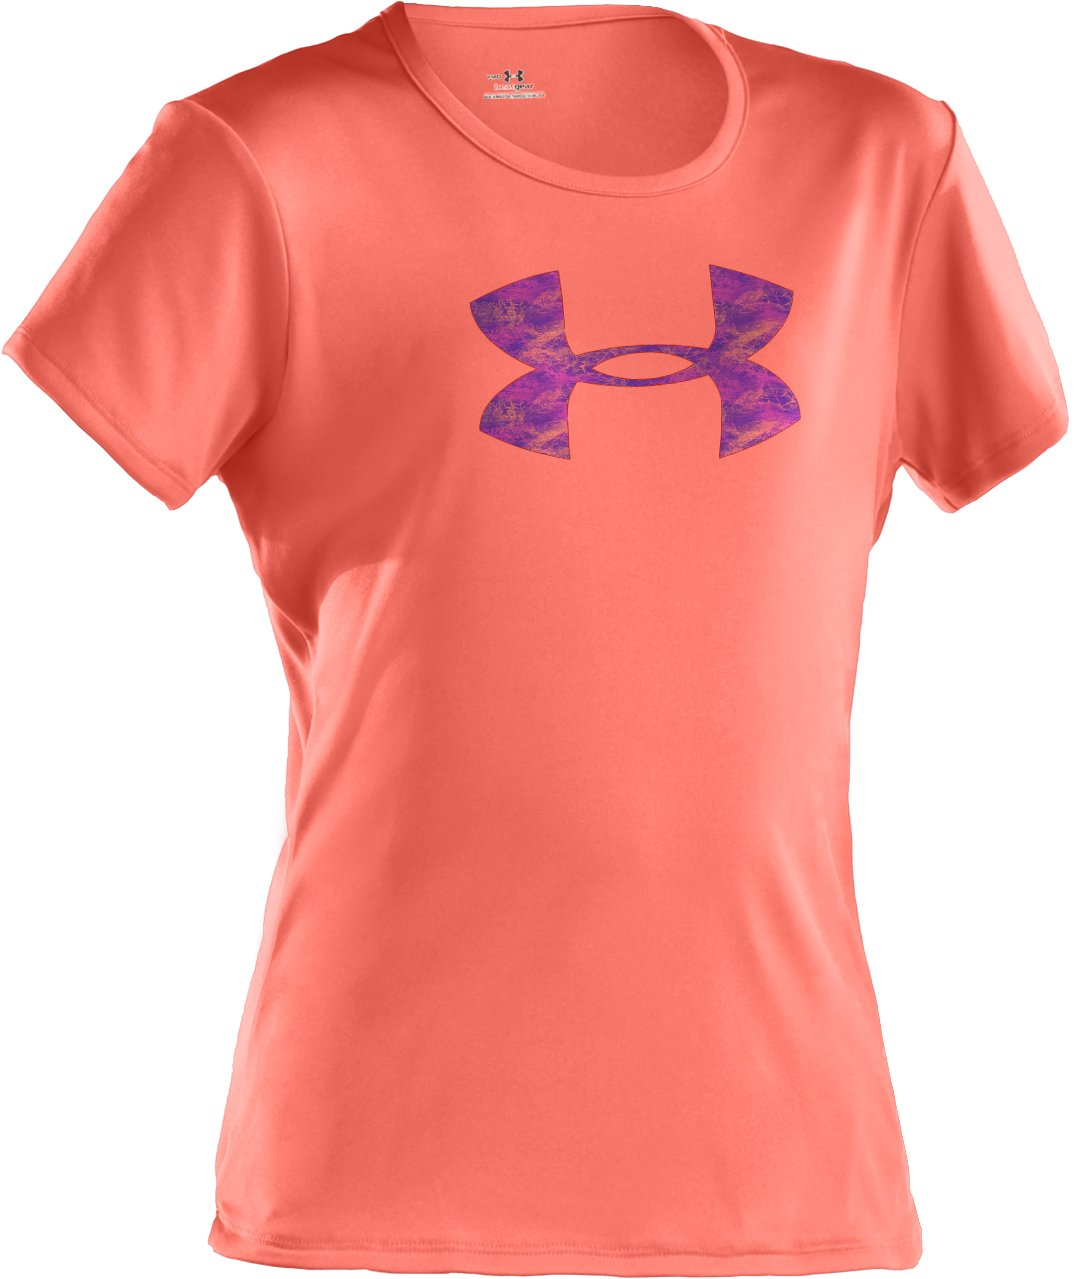 Girls' UA Big Logo Short Sleeve T-Shirt, ELECTRIC TANGERINE, zoomed image